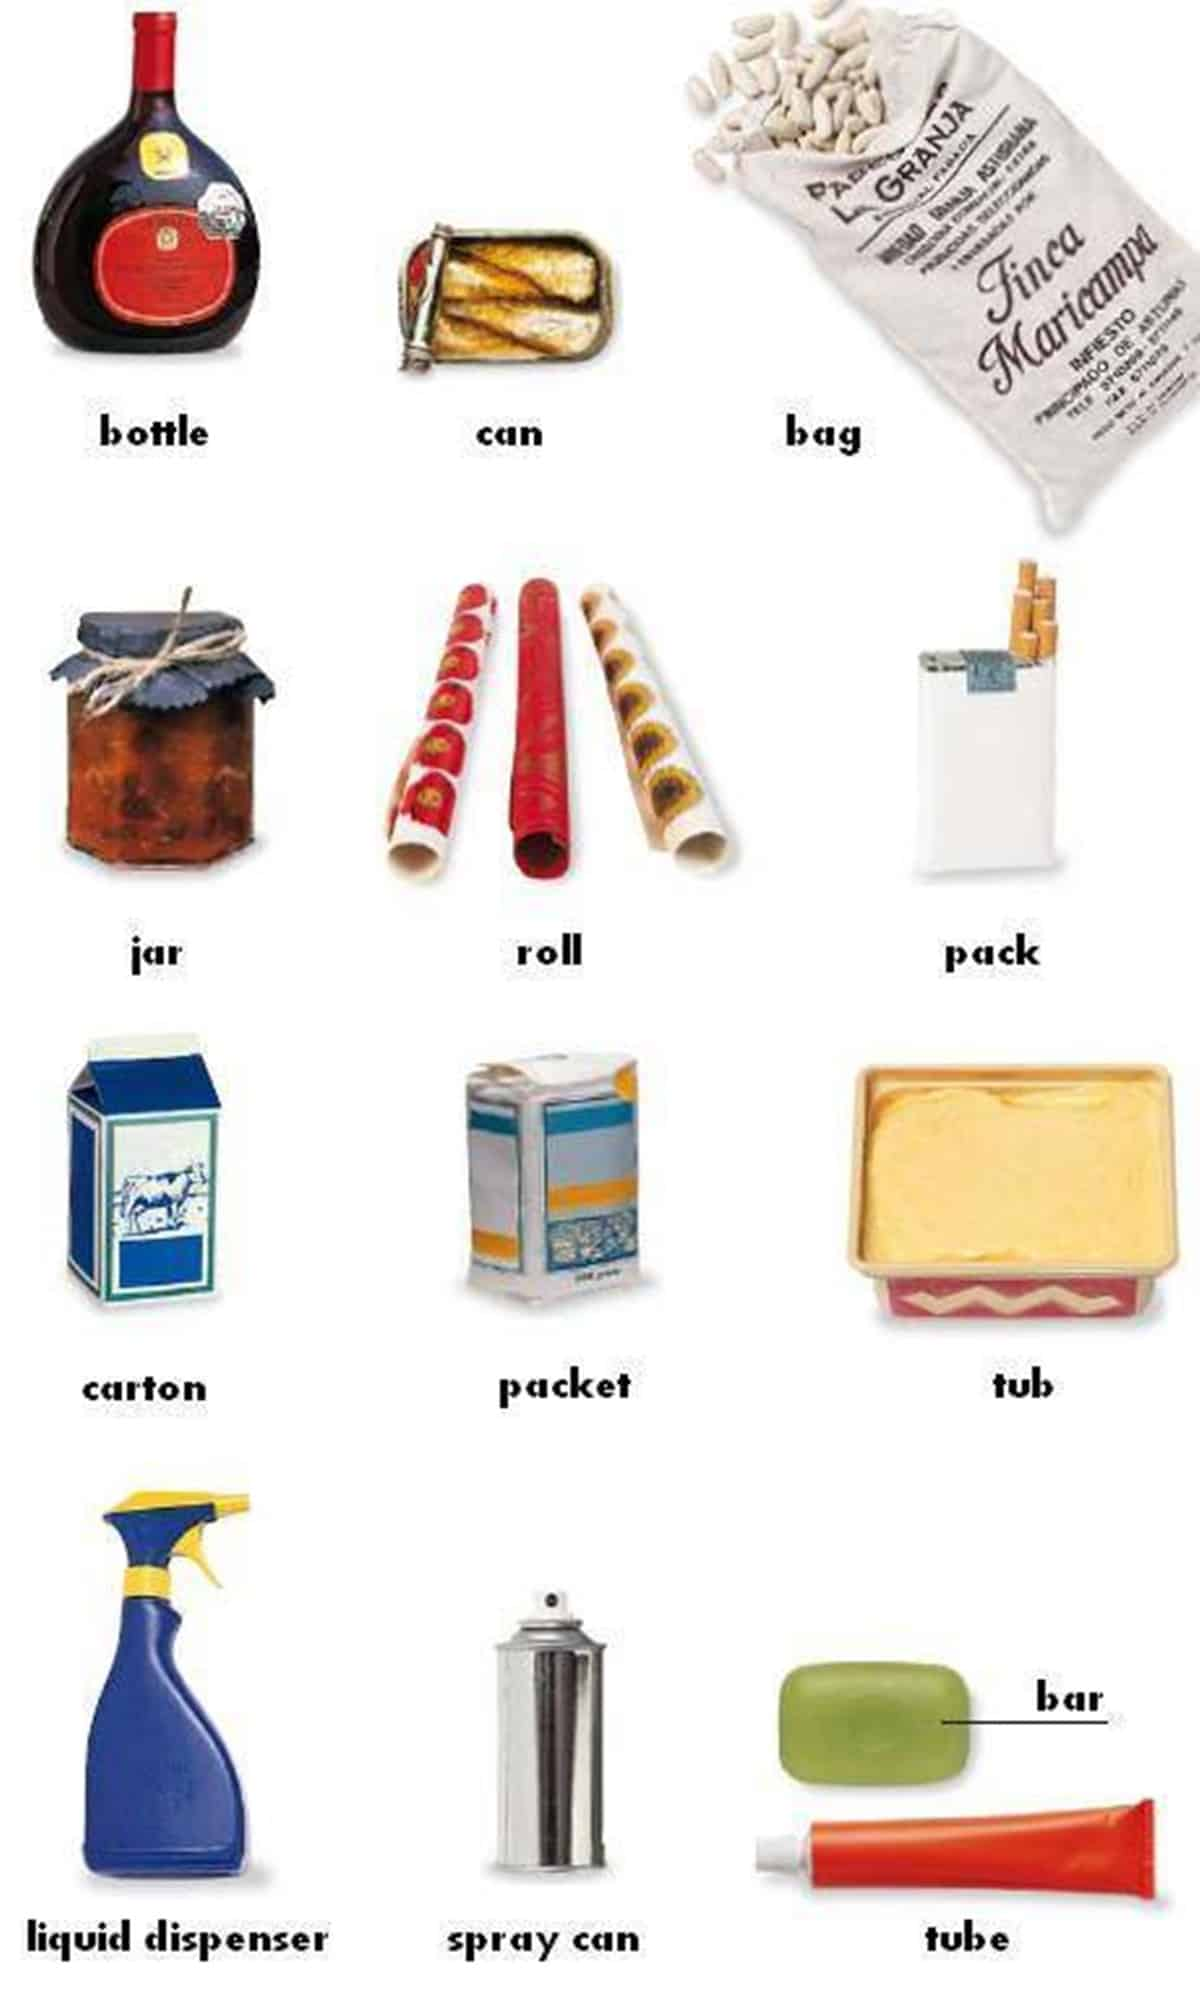 Containers and Packaging Vocabulary in English 16